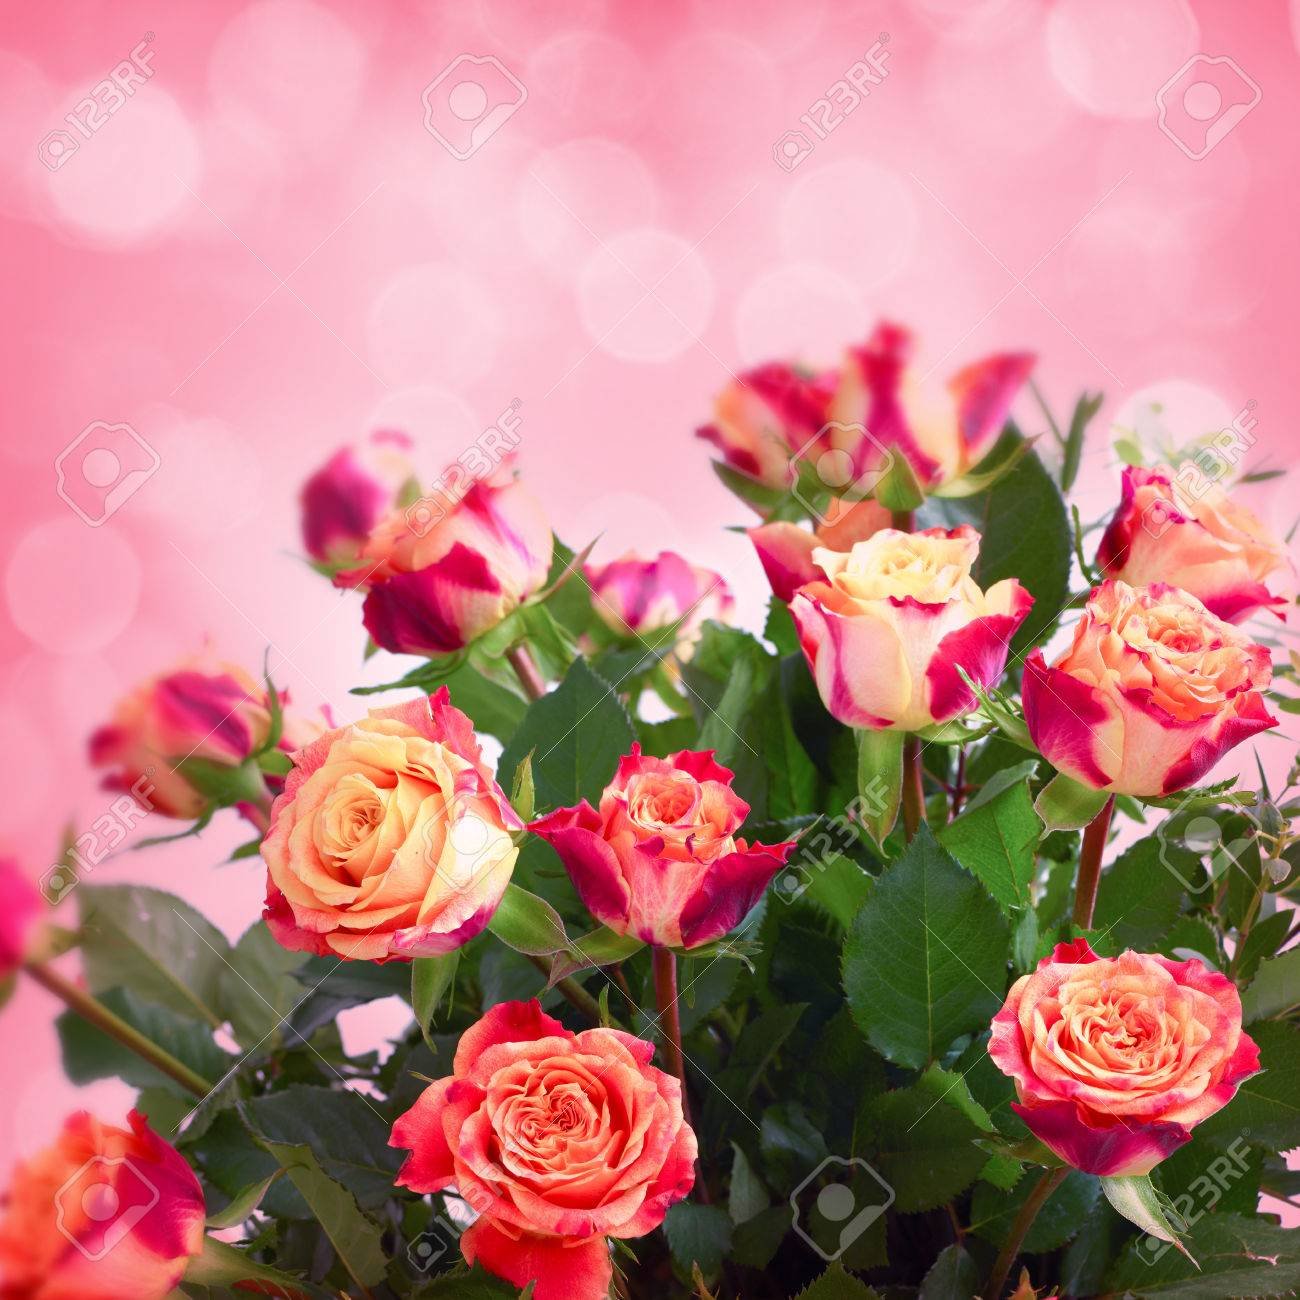 Bouquet of roses on romantic background - 43347598